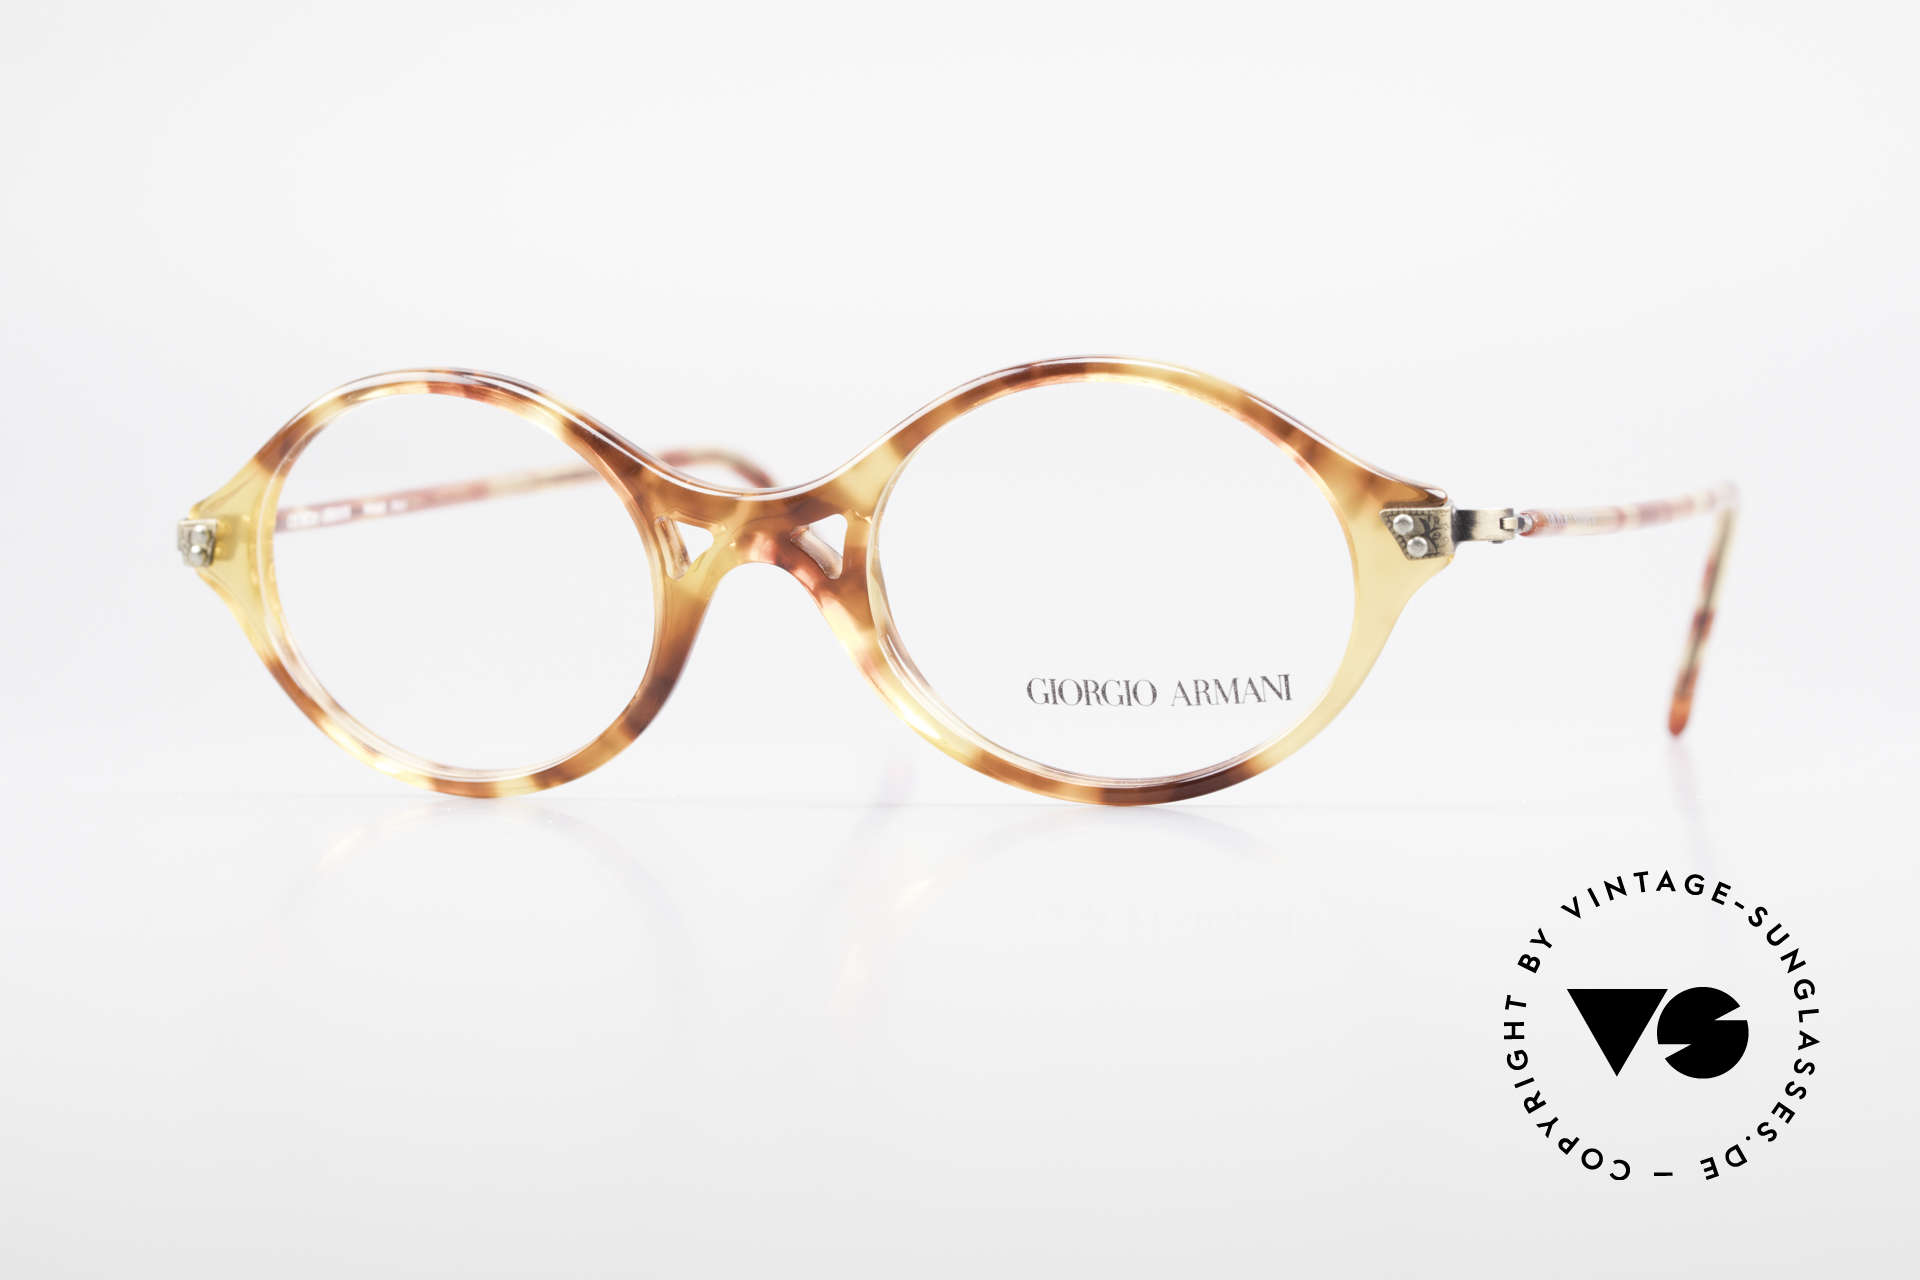 Giorgio Armani 339 Small Oval 90's Eyeglasses, vintage designer eyeglass-frame by Giorgio Armani, Made for Men and Women